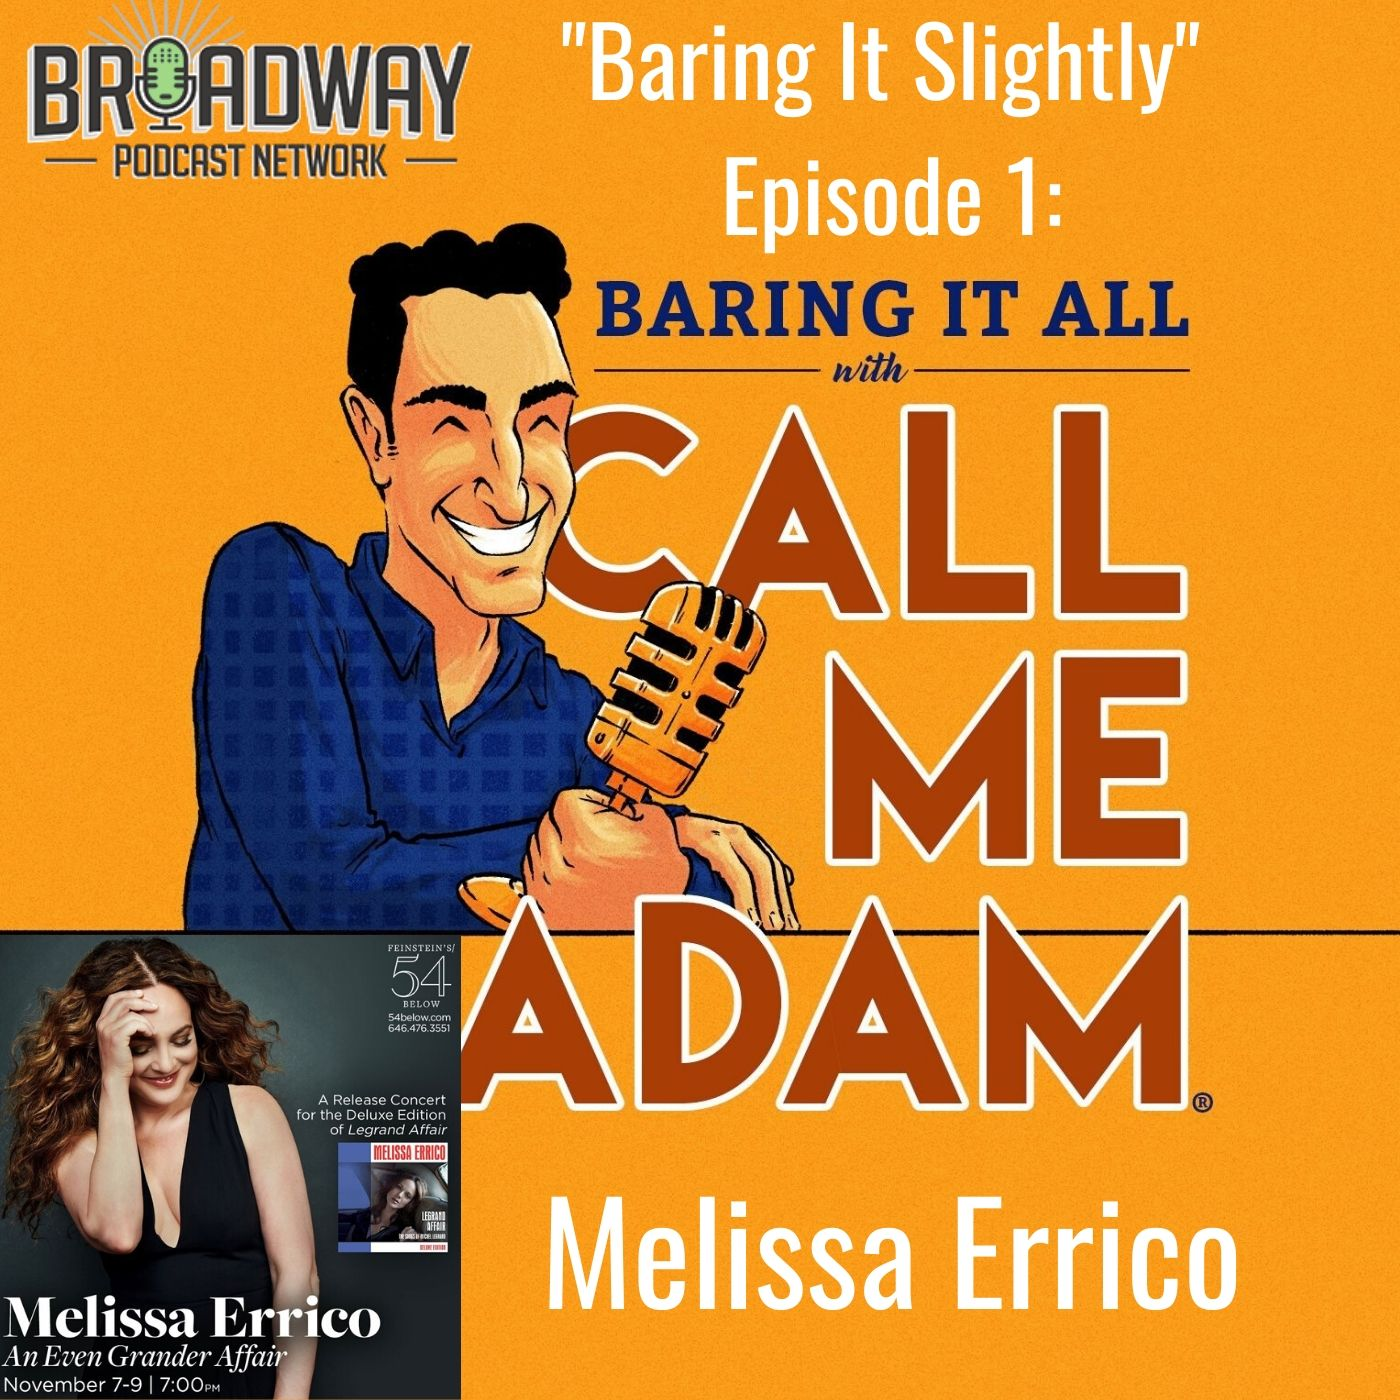 Baring It All With Call Me Adam Baring It Slighty Ep 1 Melissa Errico